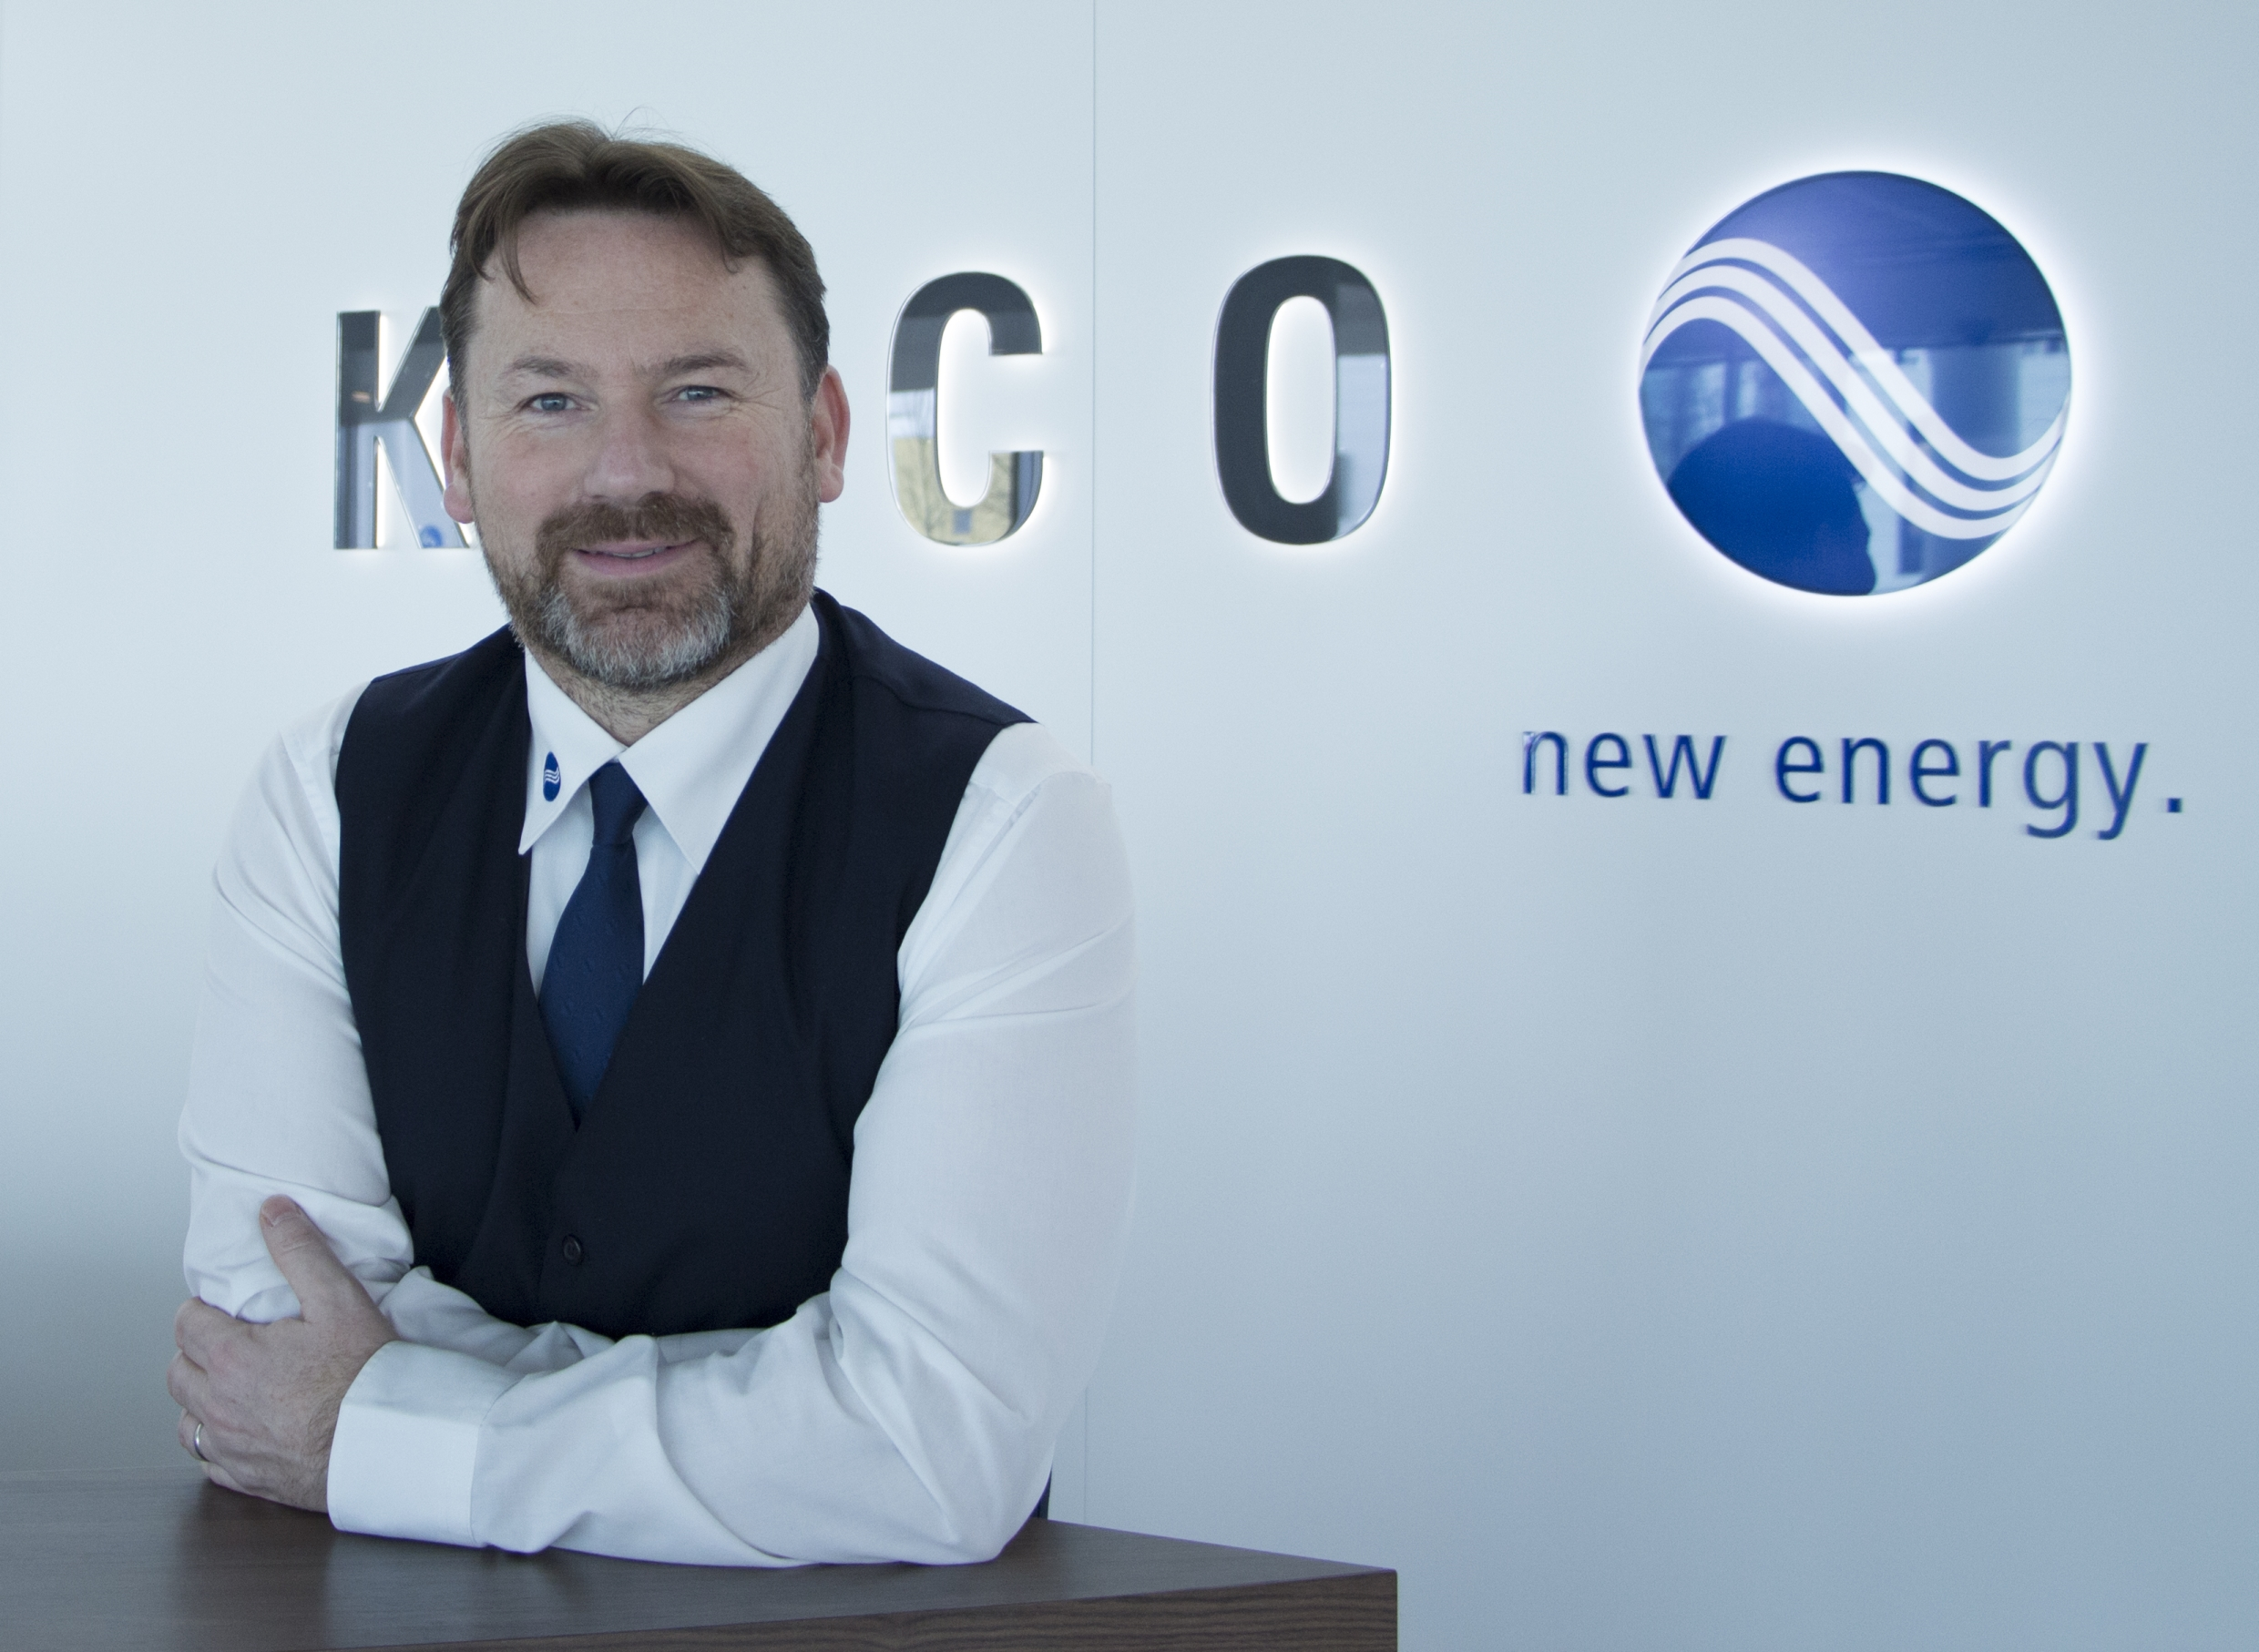 New Asian territory manager Andrew Walsh. Source: KACO New Energy